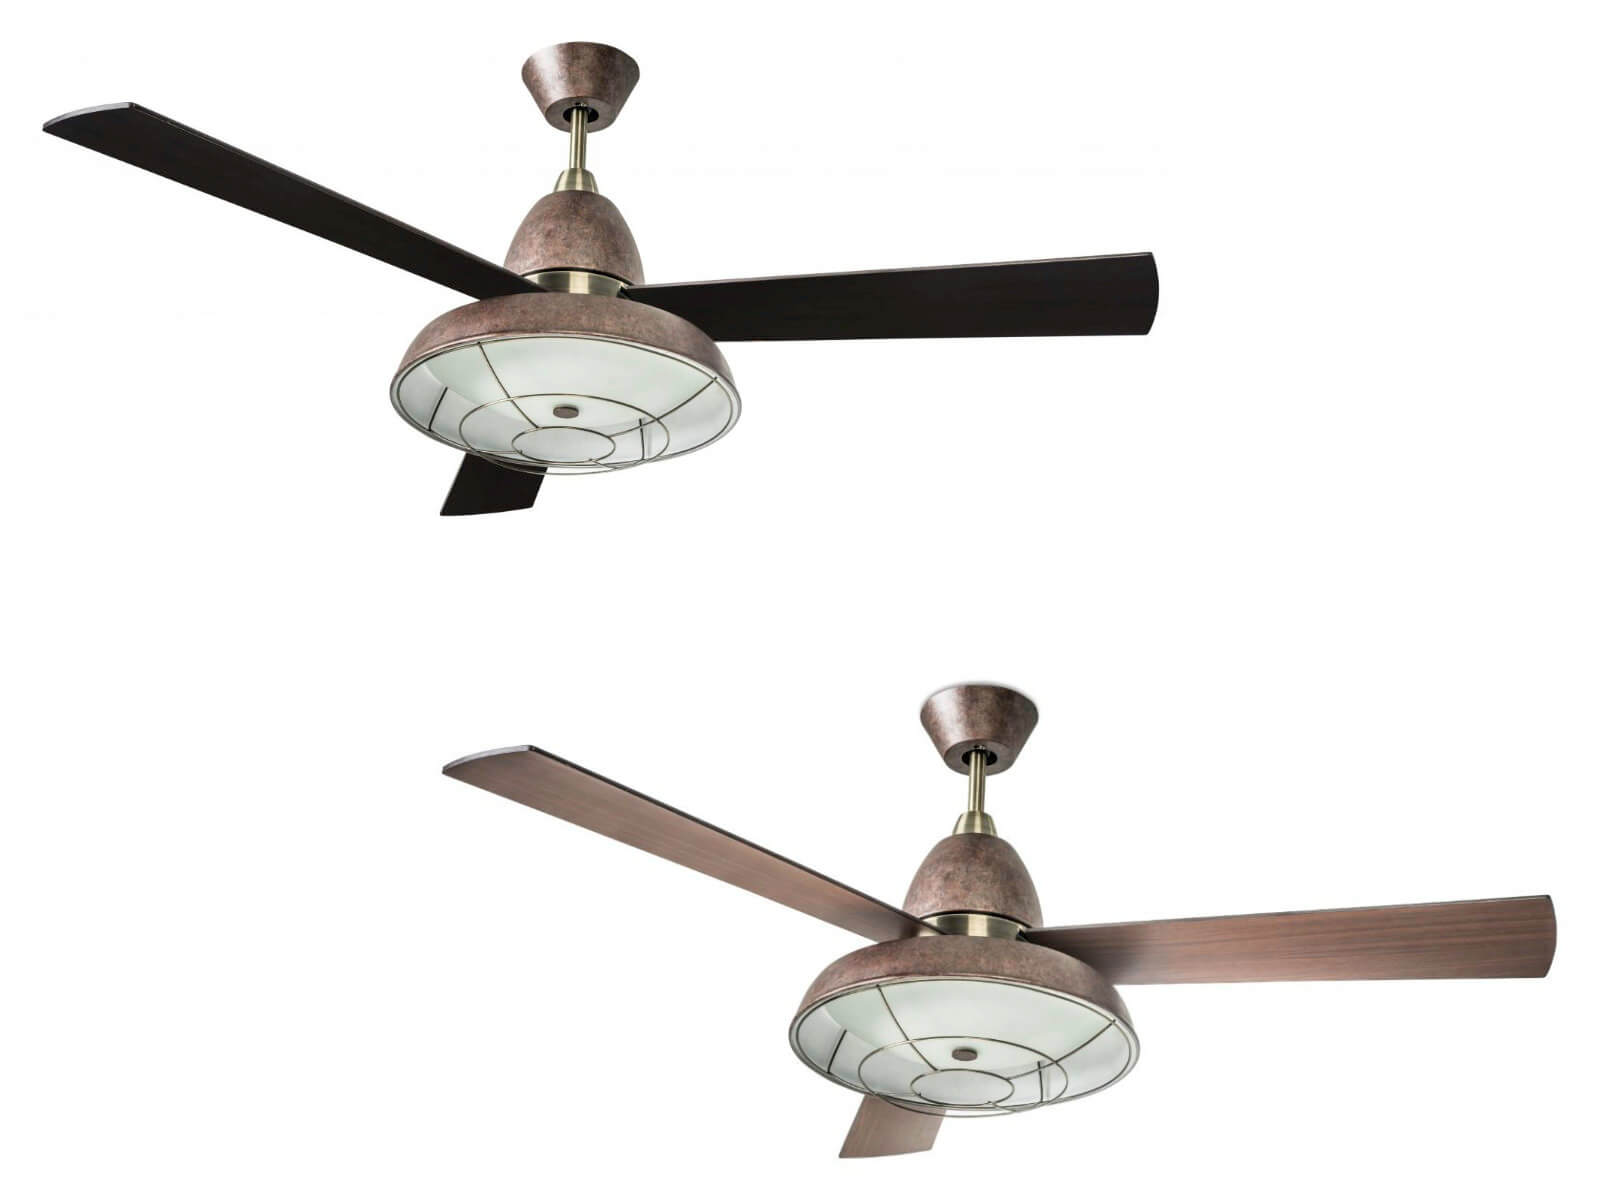 Ceiling Fan Vintage 132cm 52 With Light And Remote Home Commercial Heaters Ventilation Ceiling Fans Uk